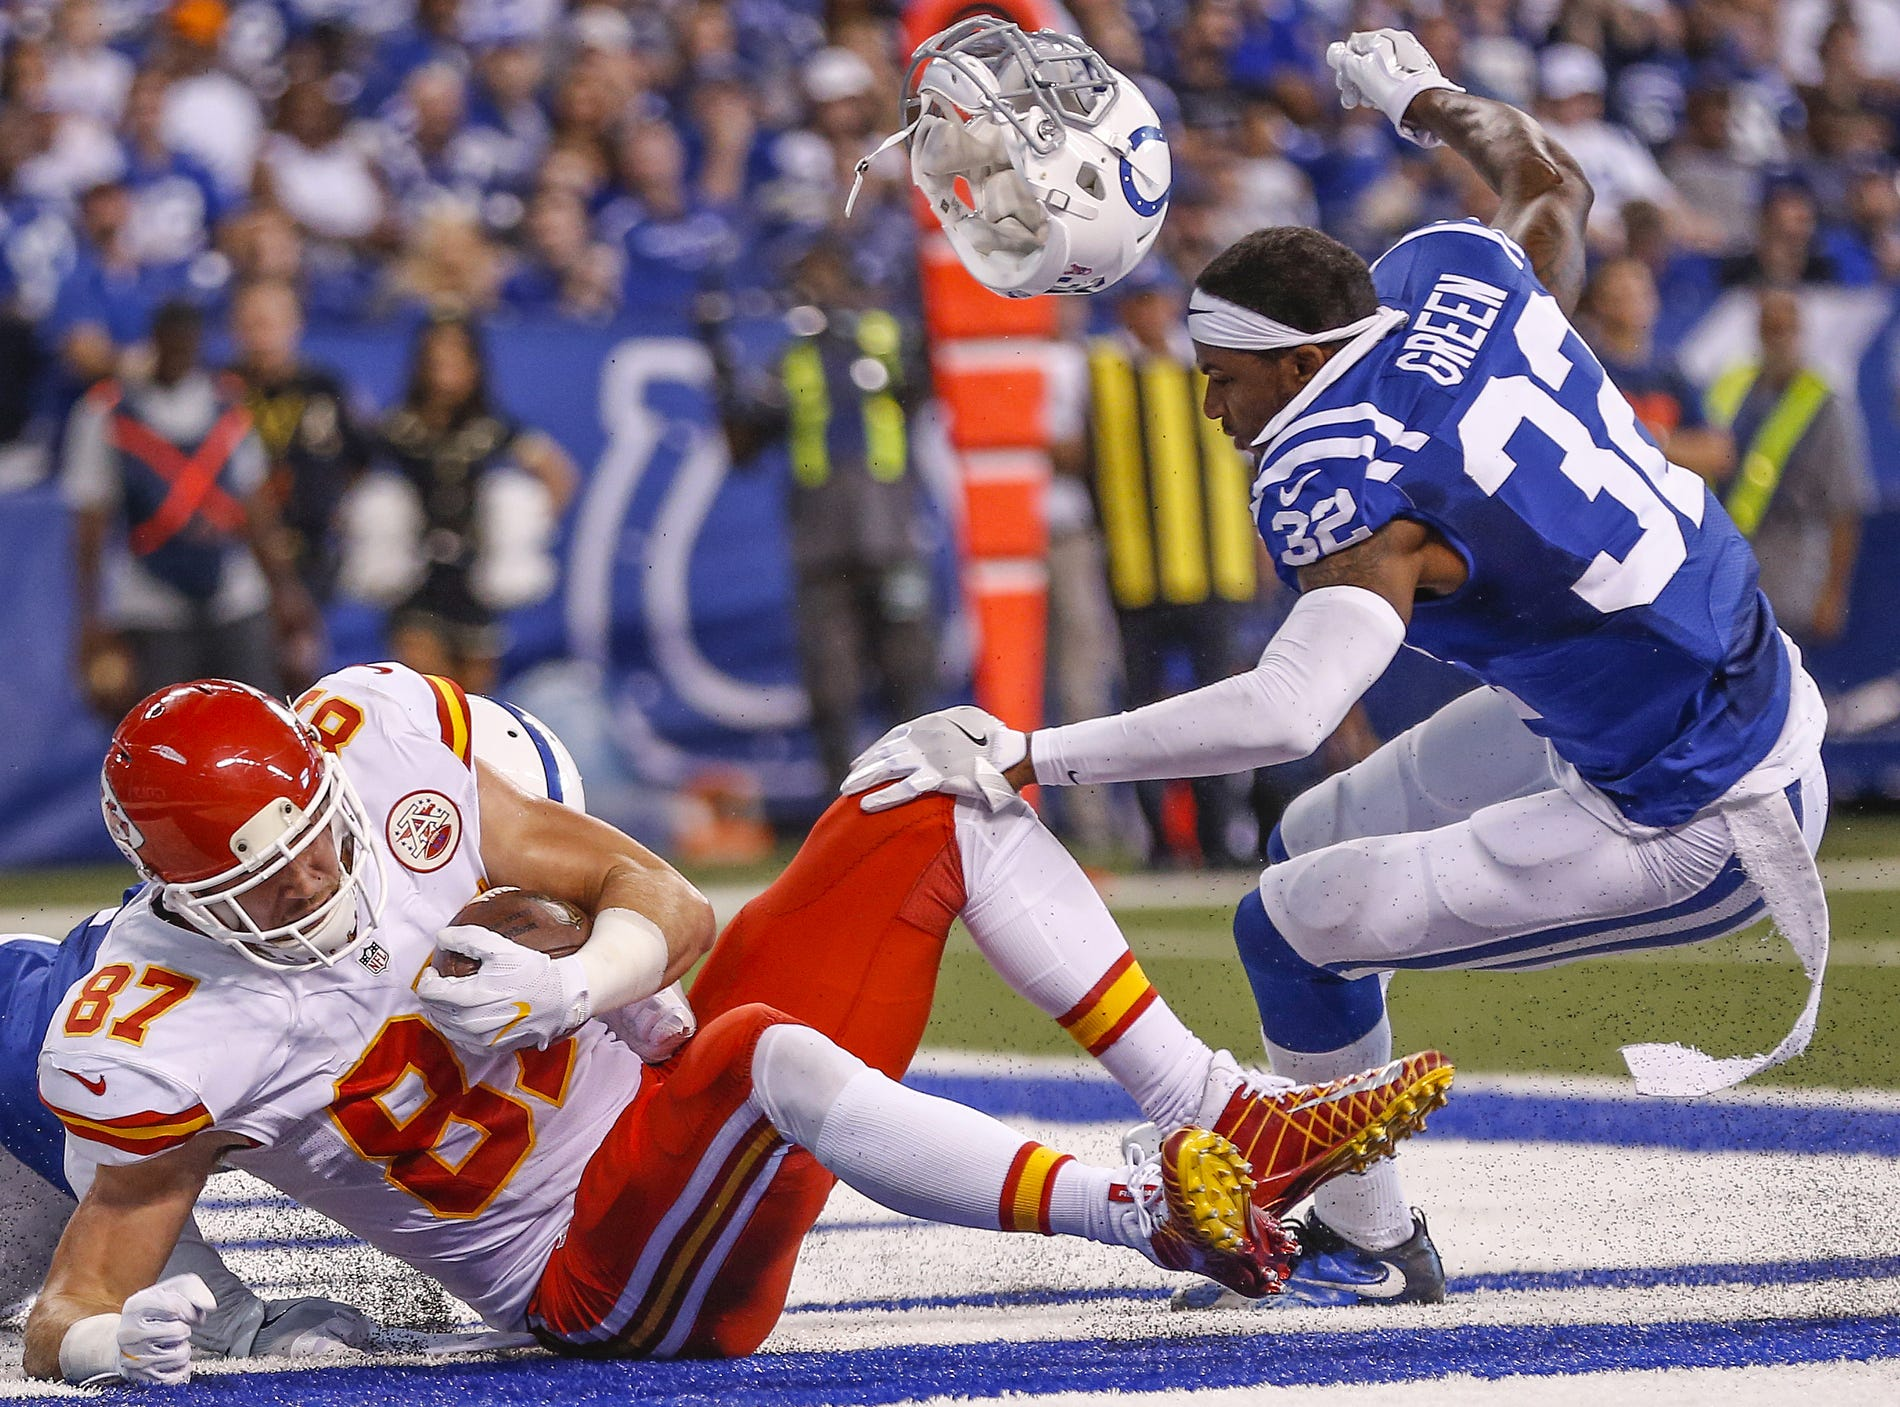 Kansas City Chiefs tight end Travis Kelce (87) pulls in a touchdown against the Indianapolis Colts at Lucas Oil Stadium on Oct. 30, 2016. Indianapolis Colts free safety T.J. Green (32) was called for a penalty on the play.